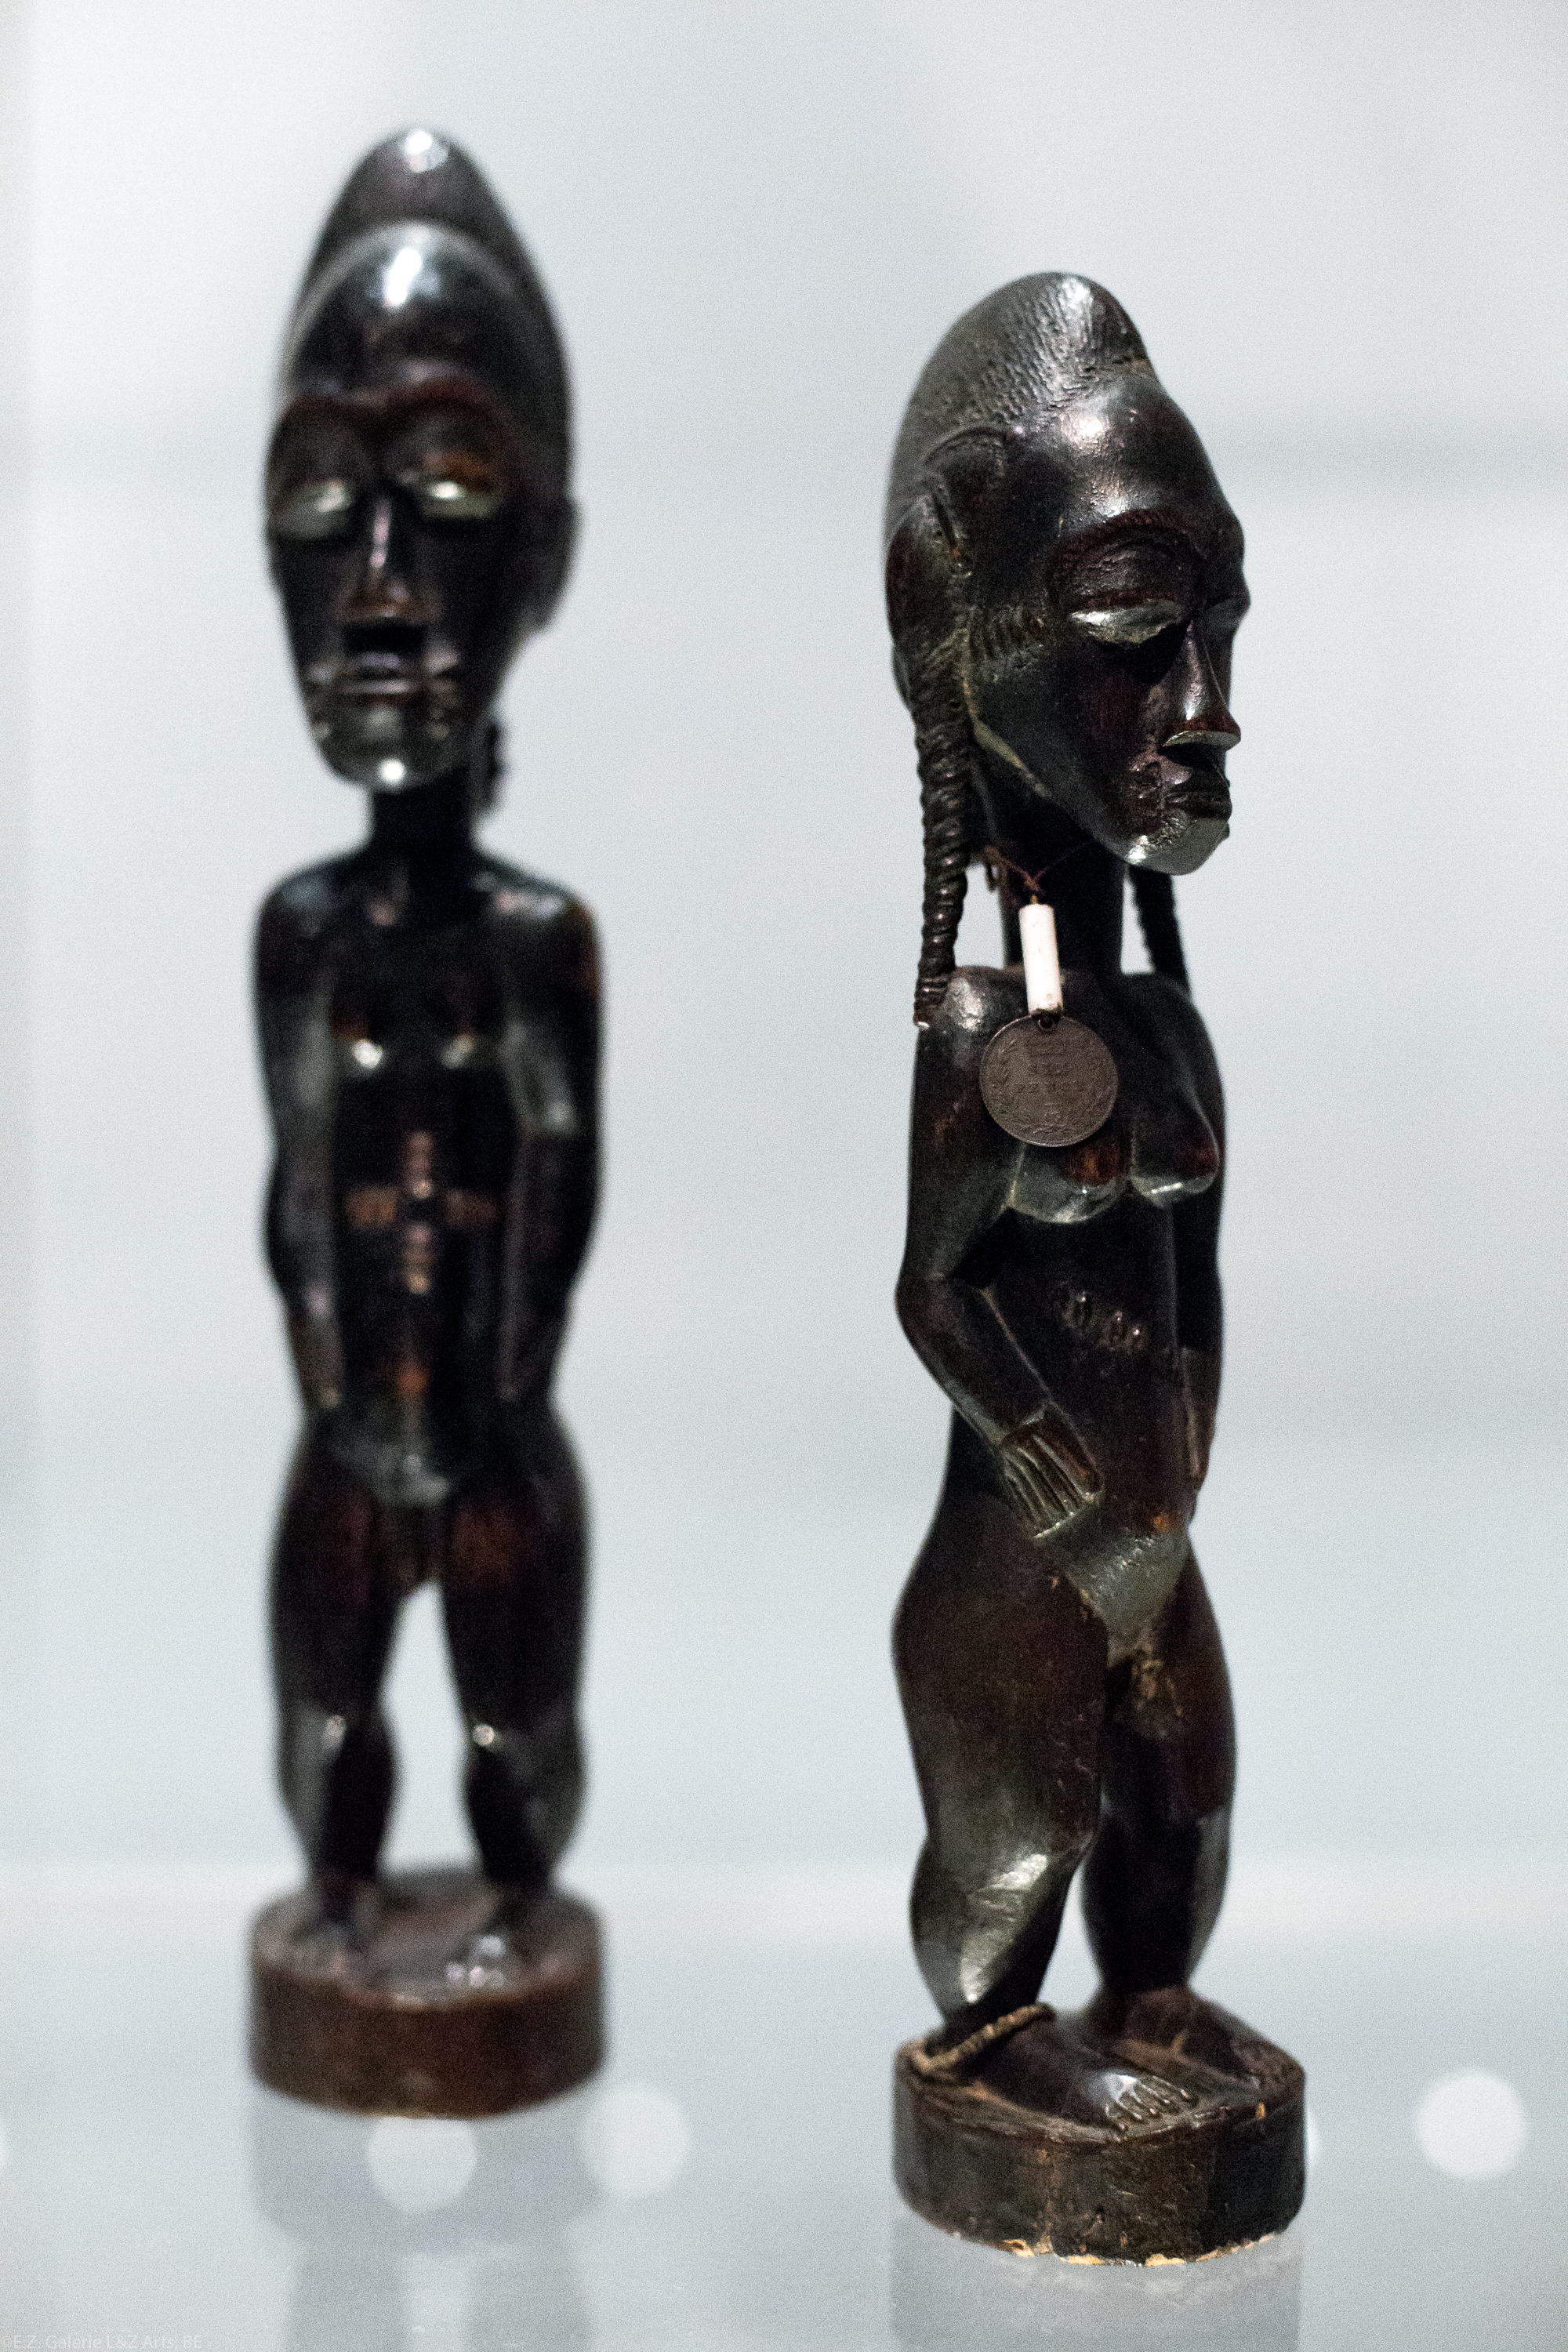 art-tribal-africain-londres-british-museum-sainsbury-galleries-bronze-benin-statue-masque-ivoire-africa-london-bini-edo-galerie-lz-arts-belgique-france-17.jpg